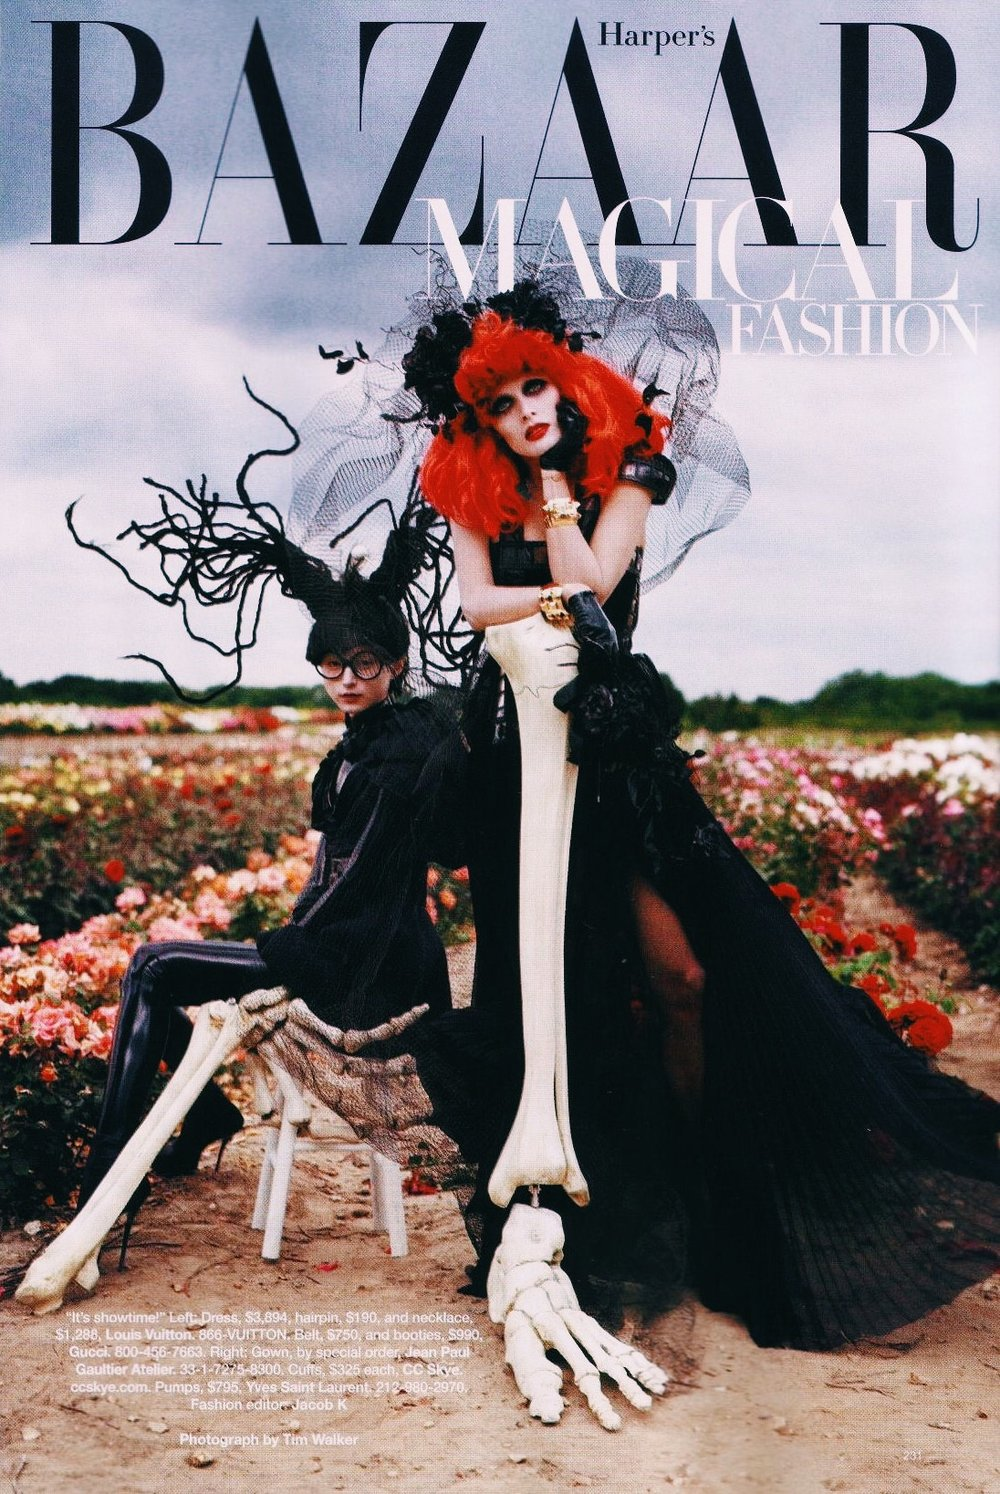 Image Details: 'Tim Burton's Tricks & Treats' Harper's Bazaar October 2009 | Photographed By: Tim Walker Image Source: The Year Of Halloween